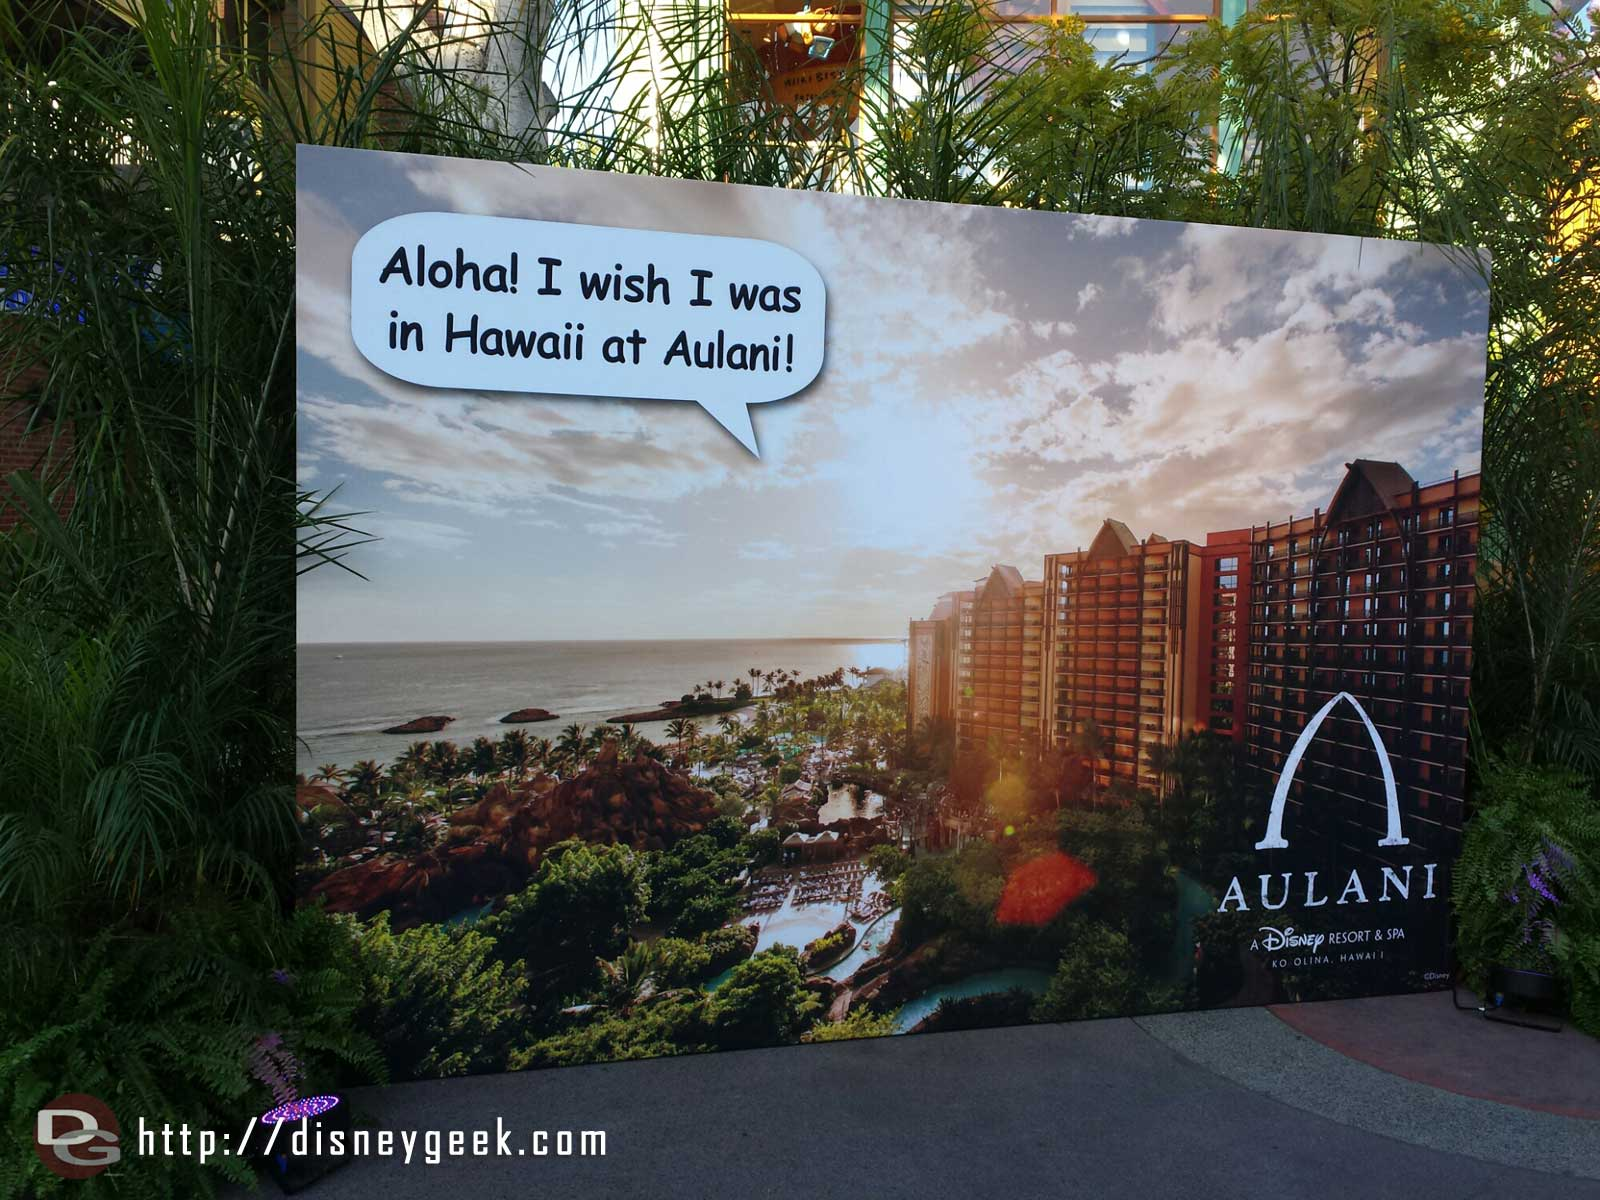 An #Aulani photo op is near House of Blues/Build-a-Bear this week for Hawaiian nights at Downtown Disney